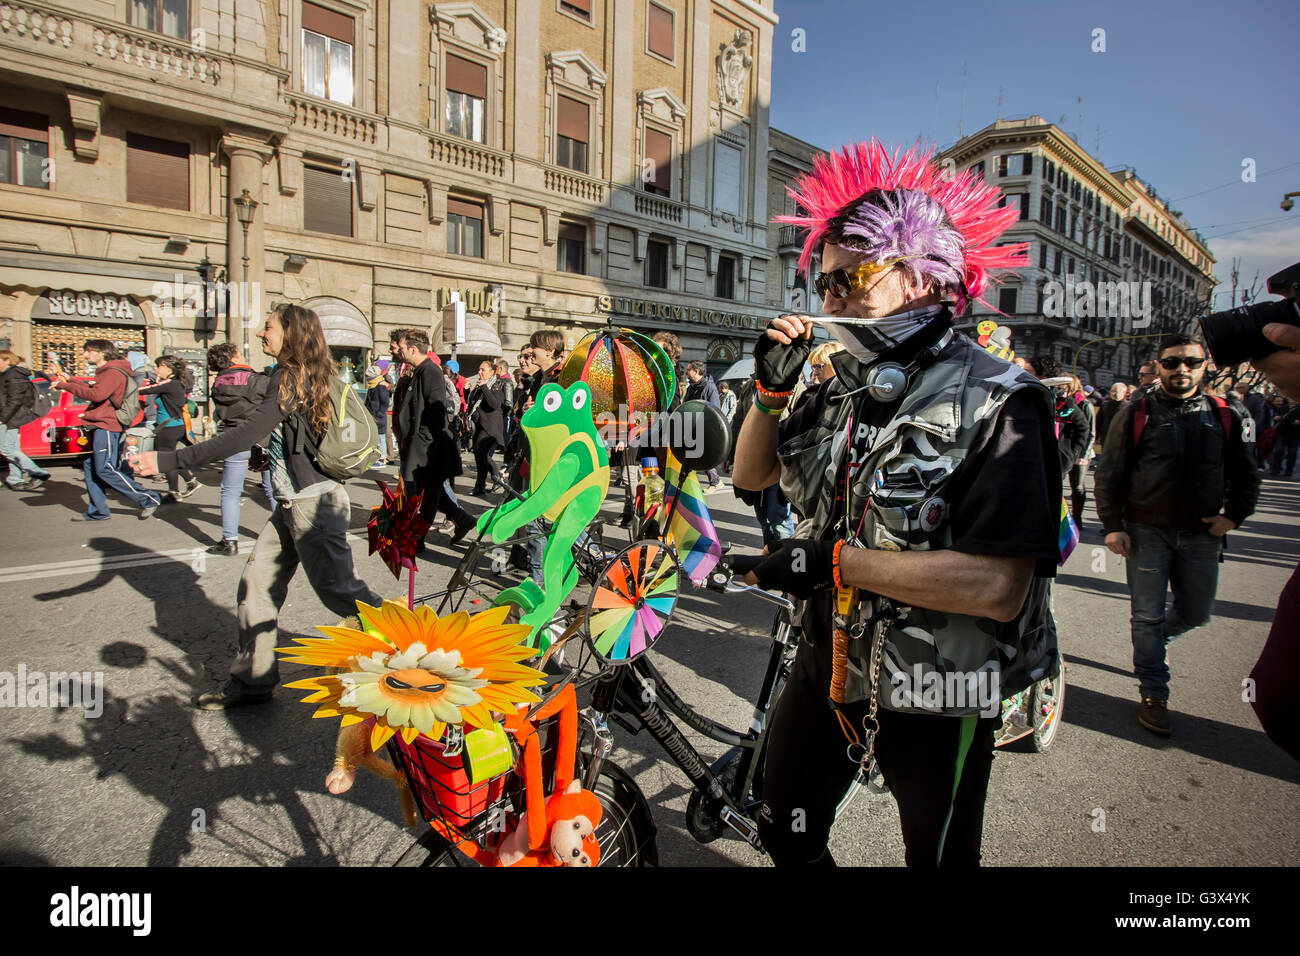 Gay delegation took part in the event 'No Salvini day' in Rome - Stock Image